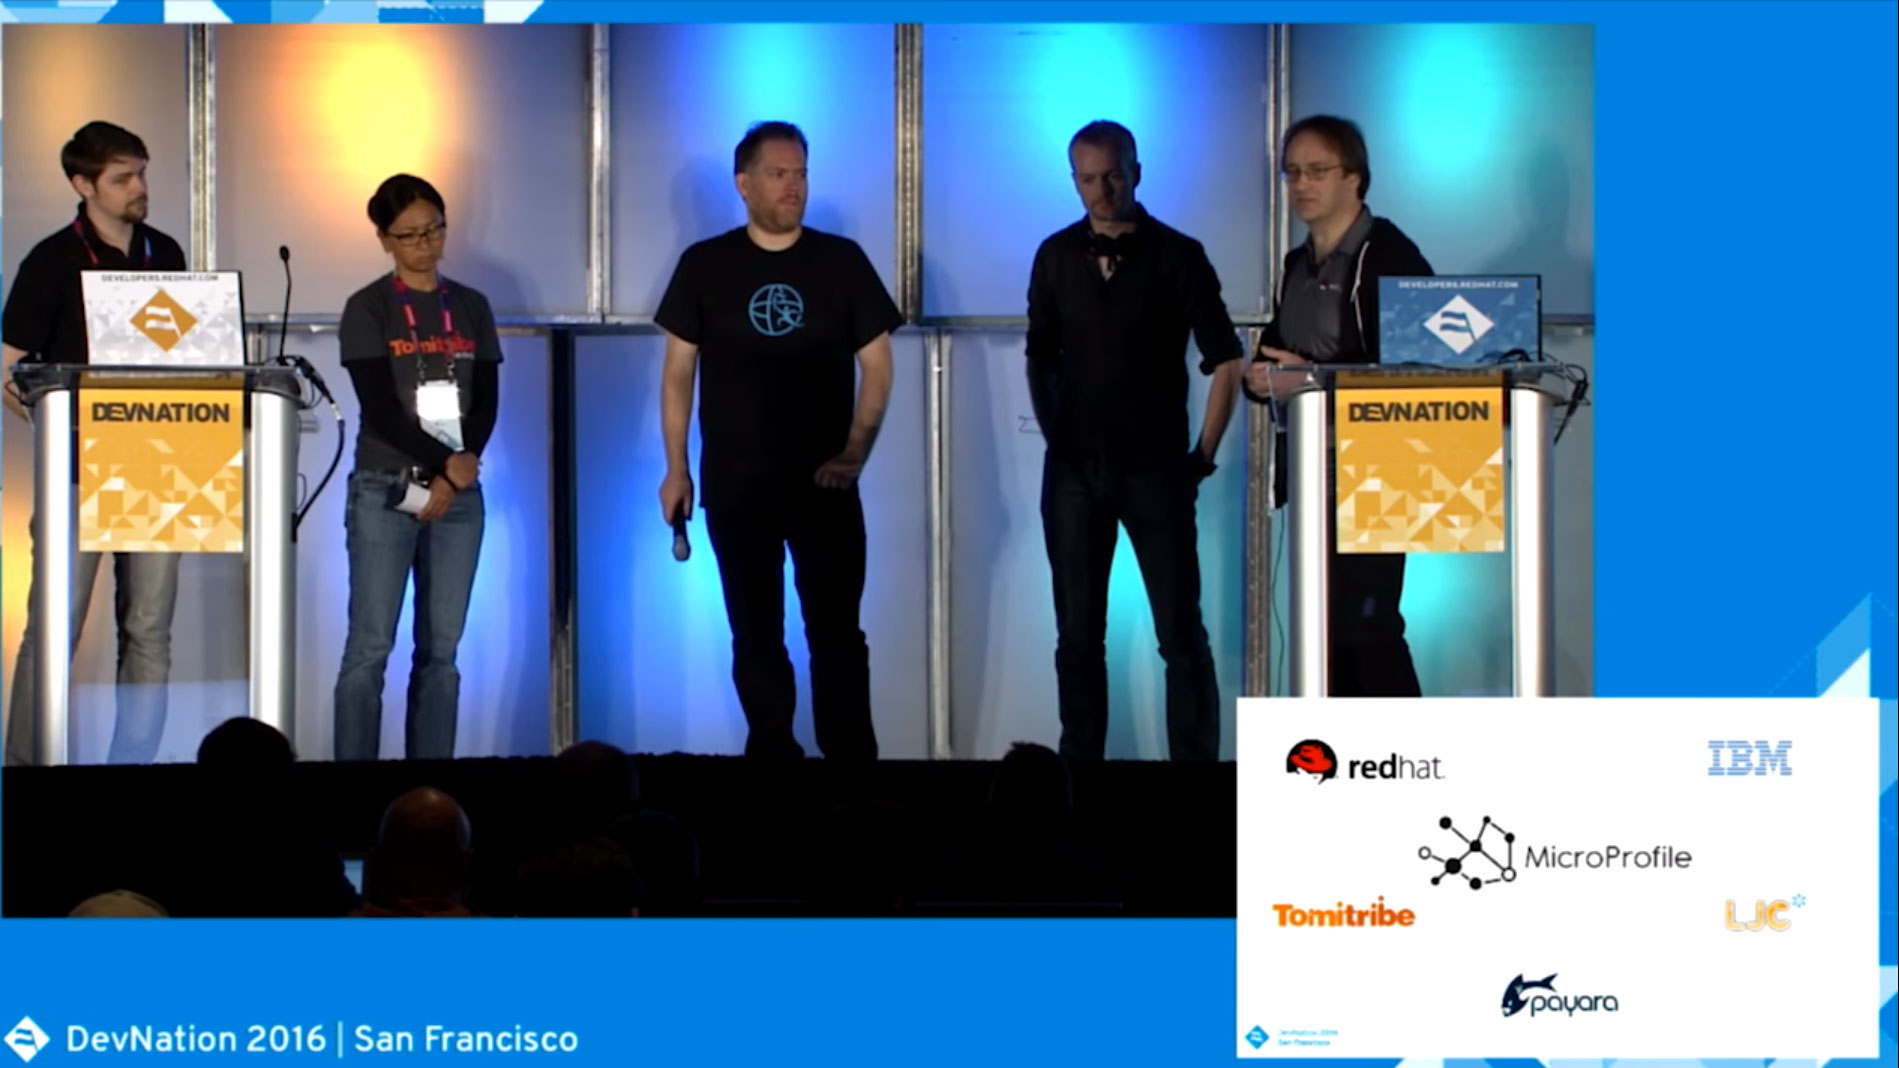 MicroProfile-Devnation-Panel.jpg